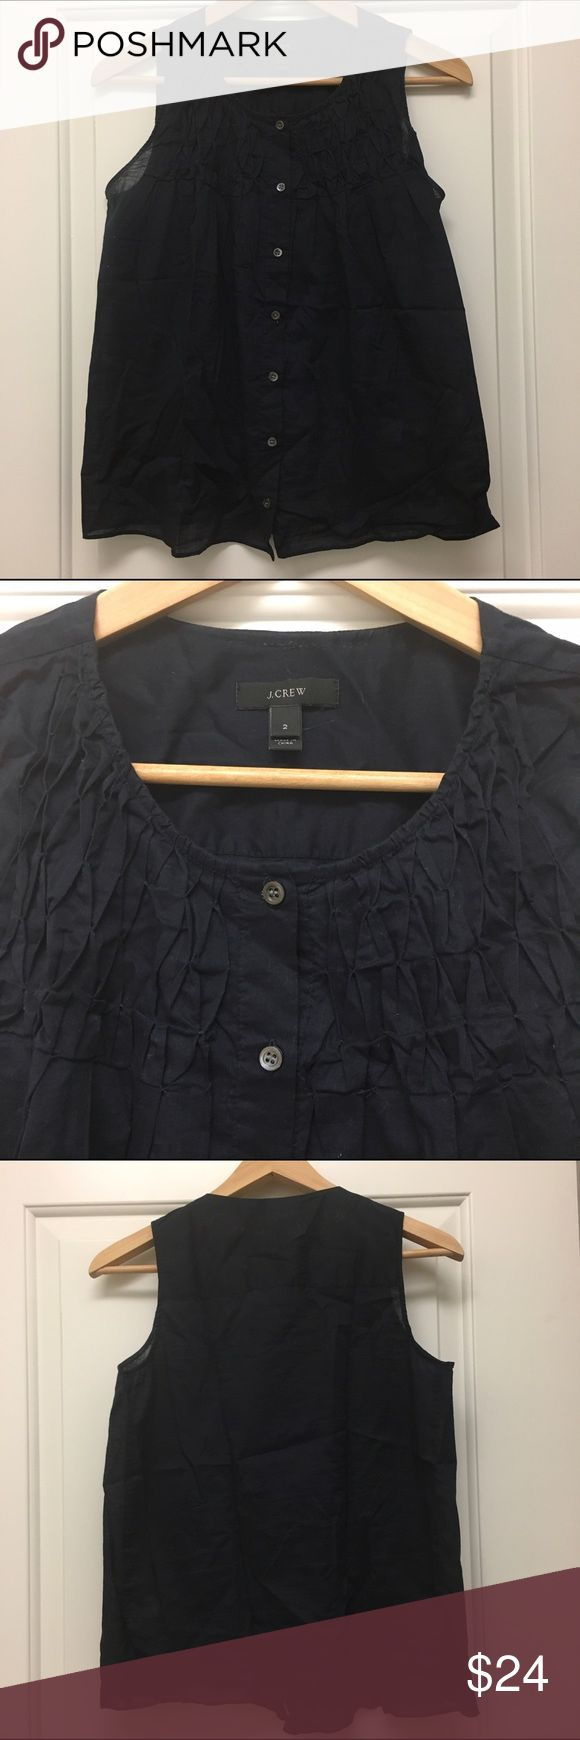 J.Crew black smocked top Breezy and flattering cotton smocked top from jcrew. Very comfortable. Some wear but no damage. Machine wash. J. Crew Tops Tank Tops